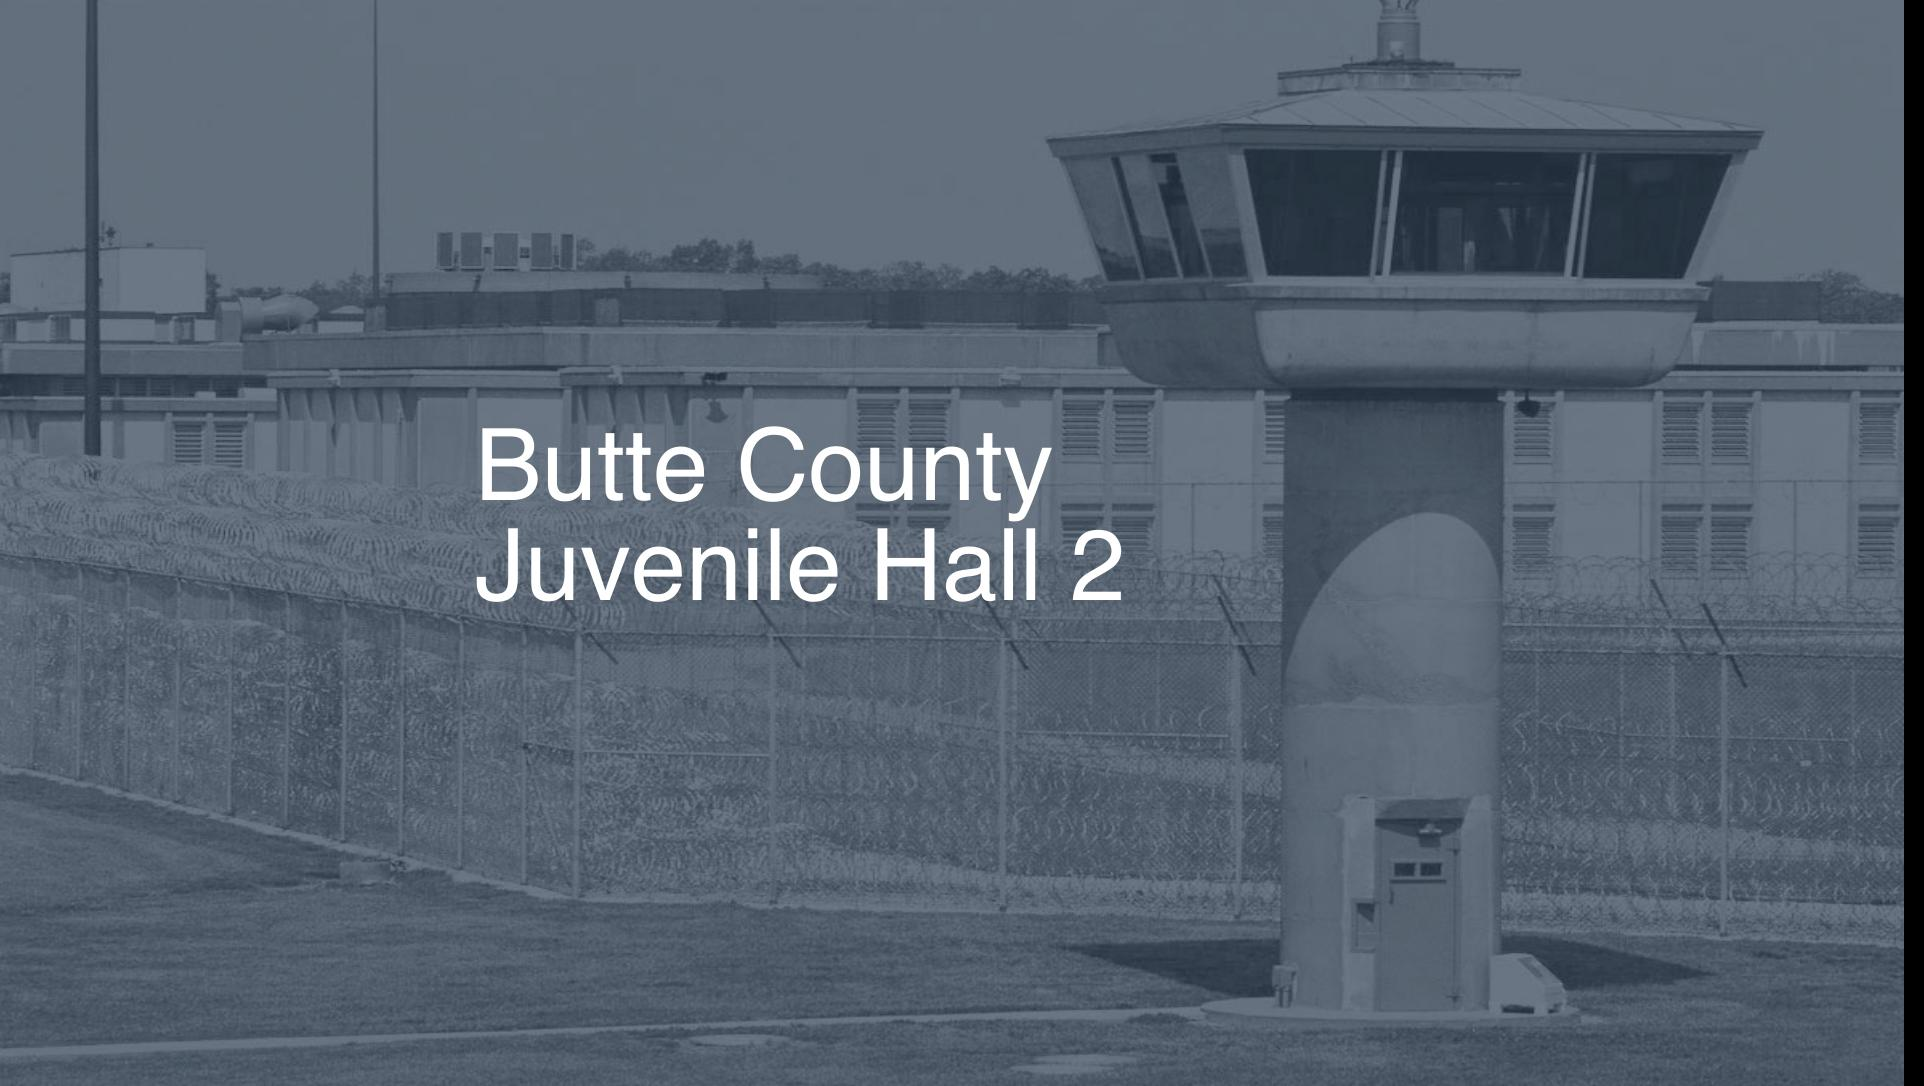 Butte County Juvenile Hall correctional facility picture